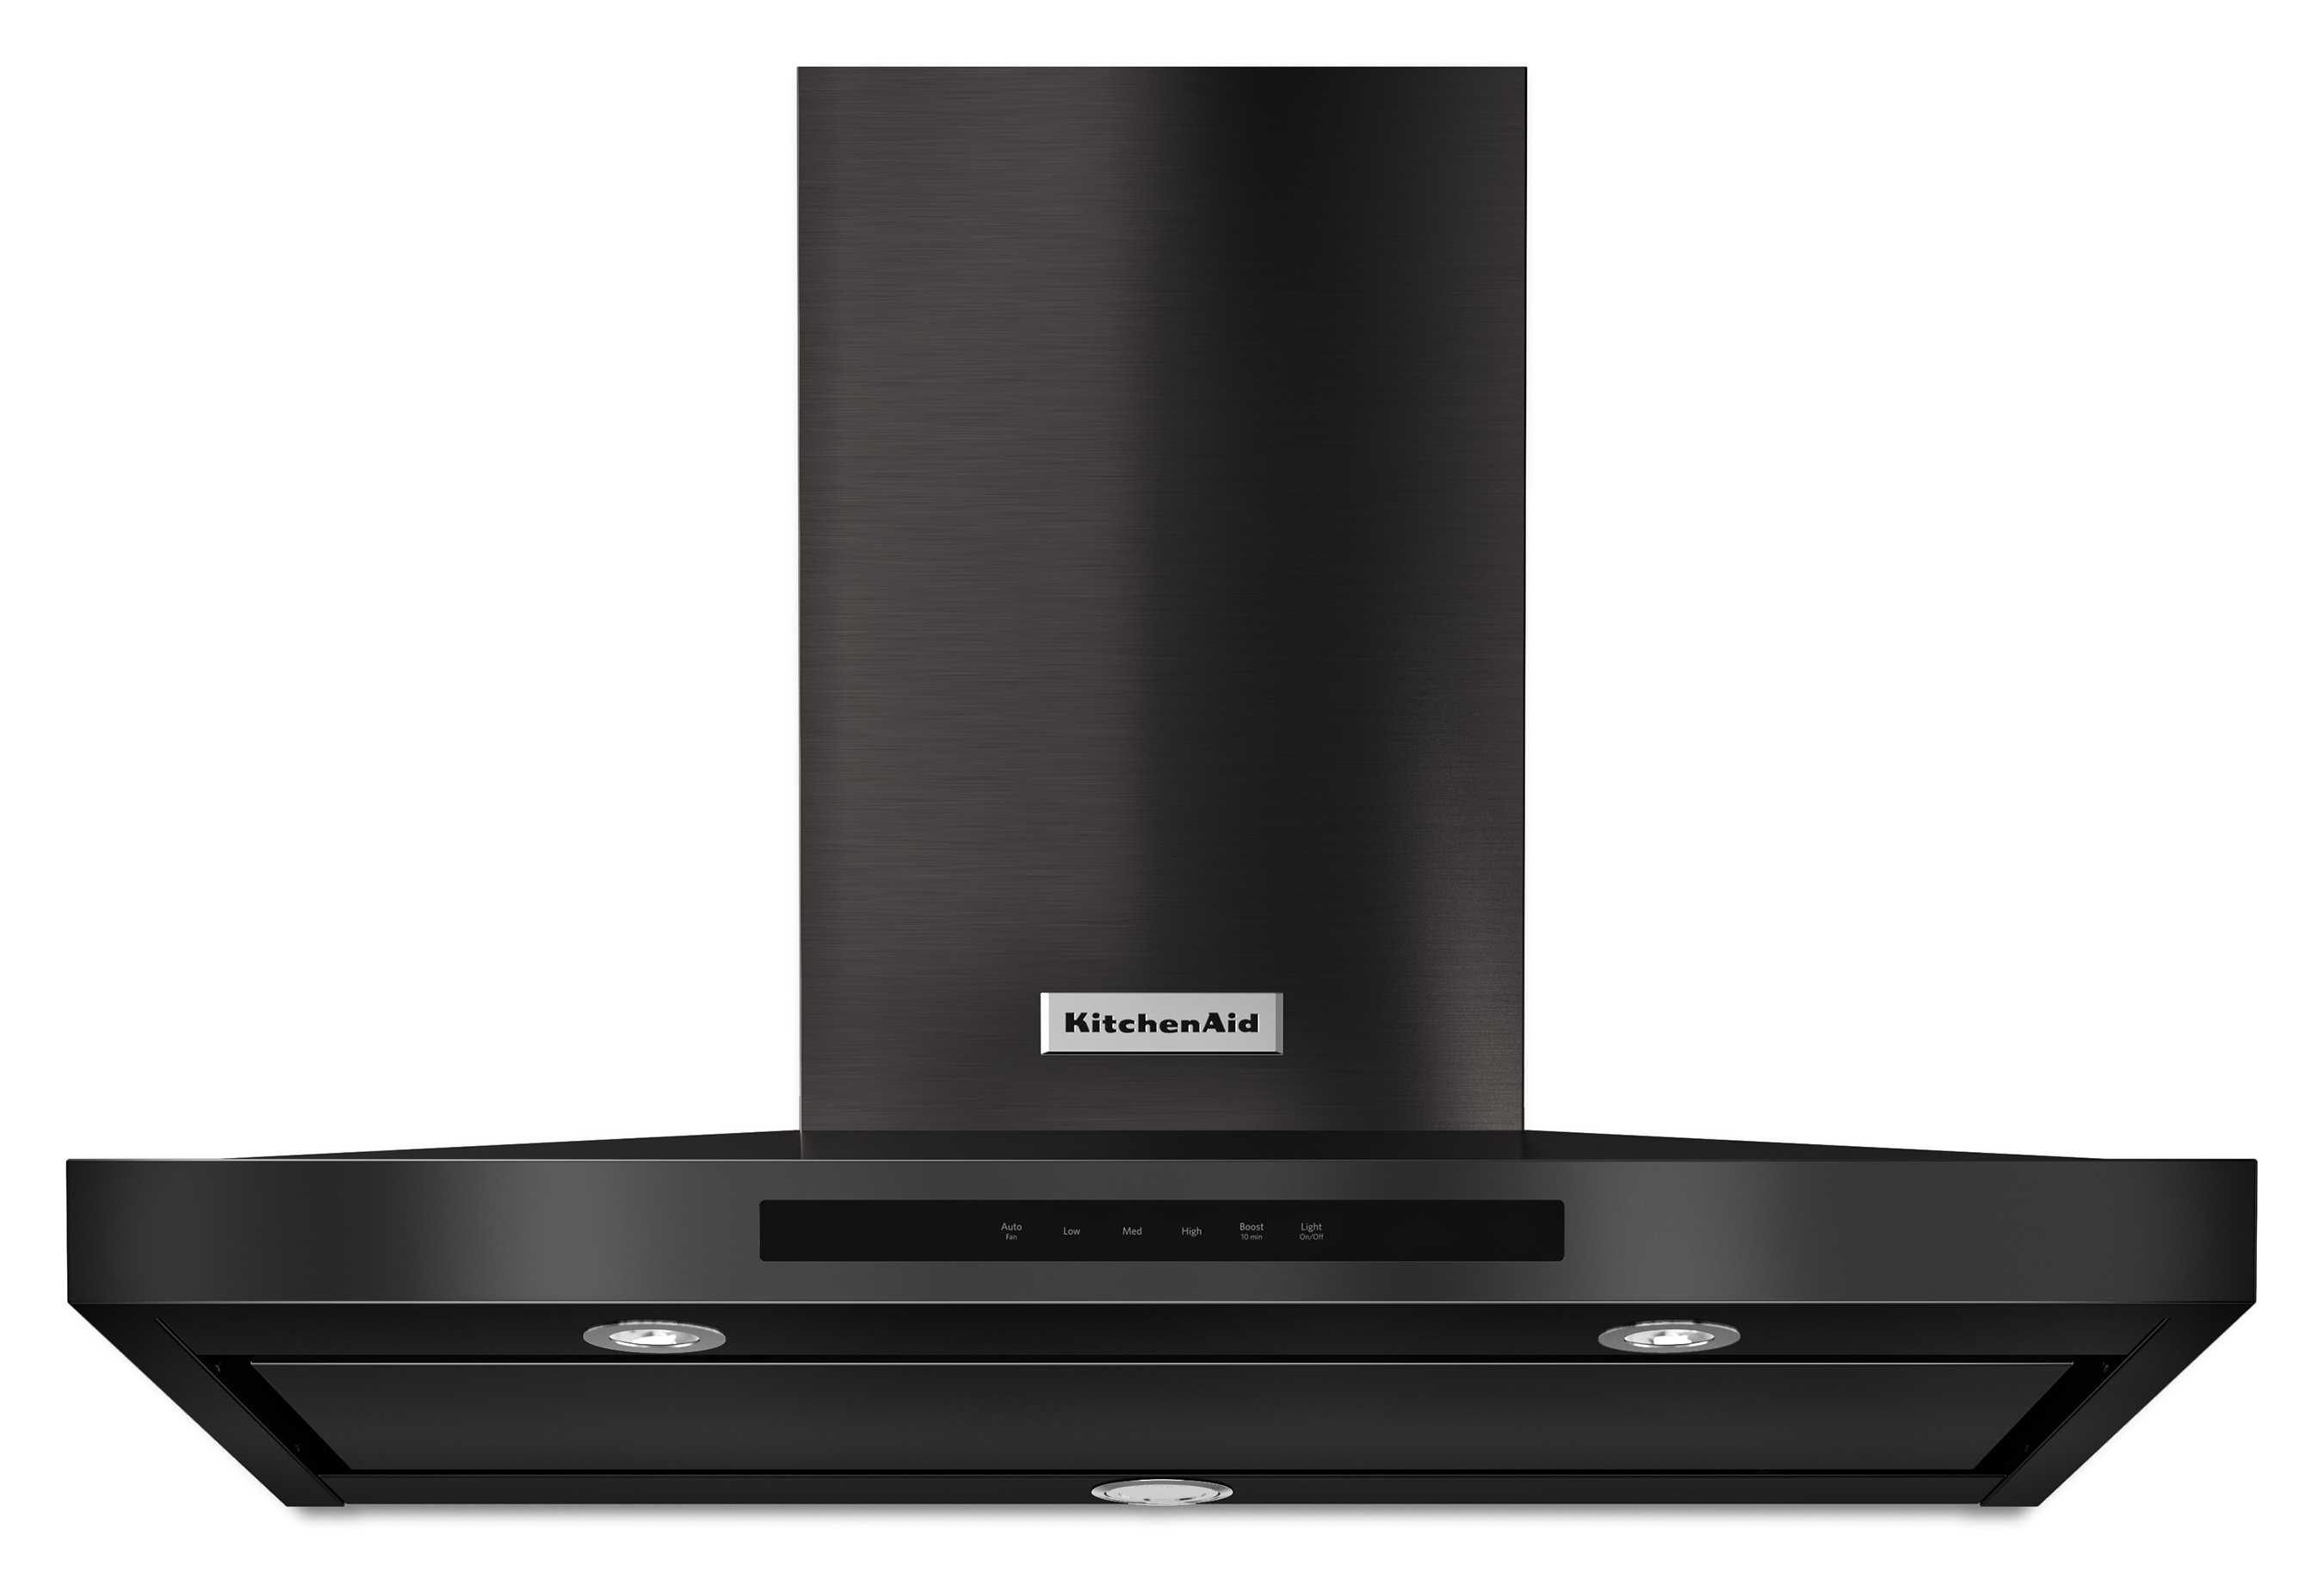 New Black Stainless Steel From KitchenAid: A Warm Take On Professional ...